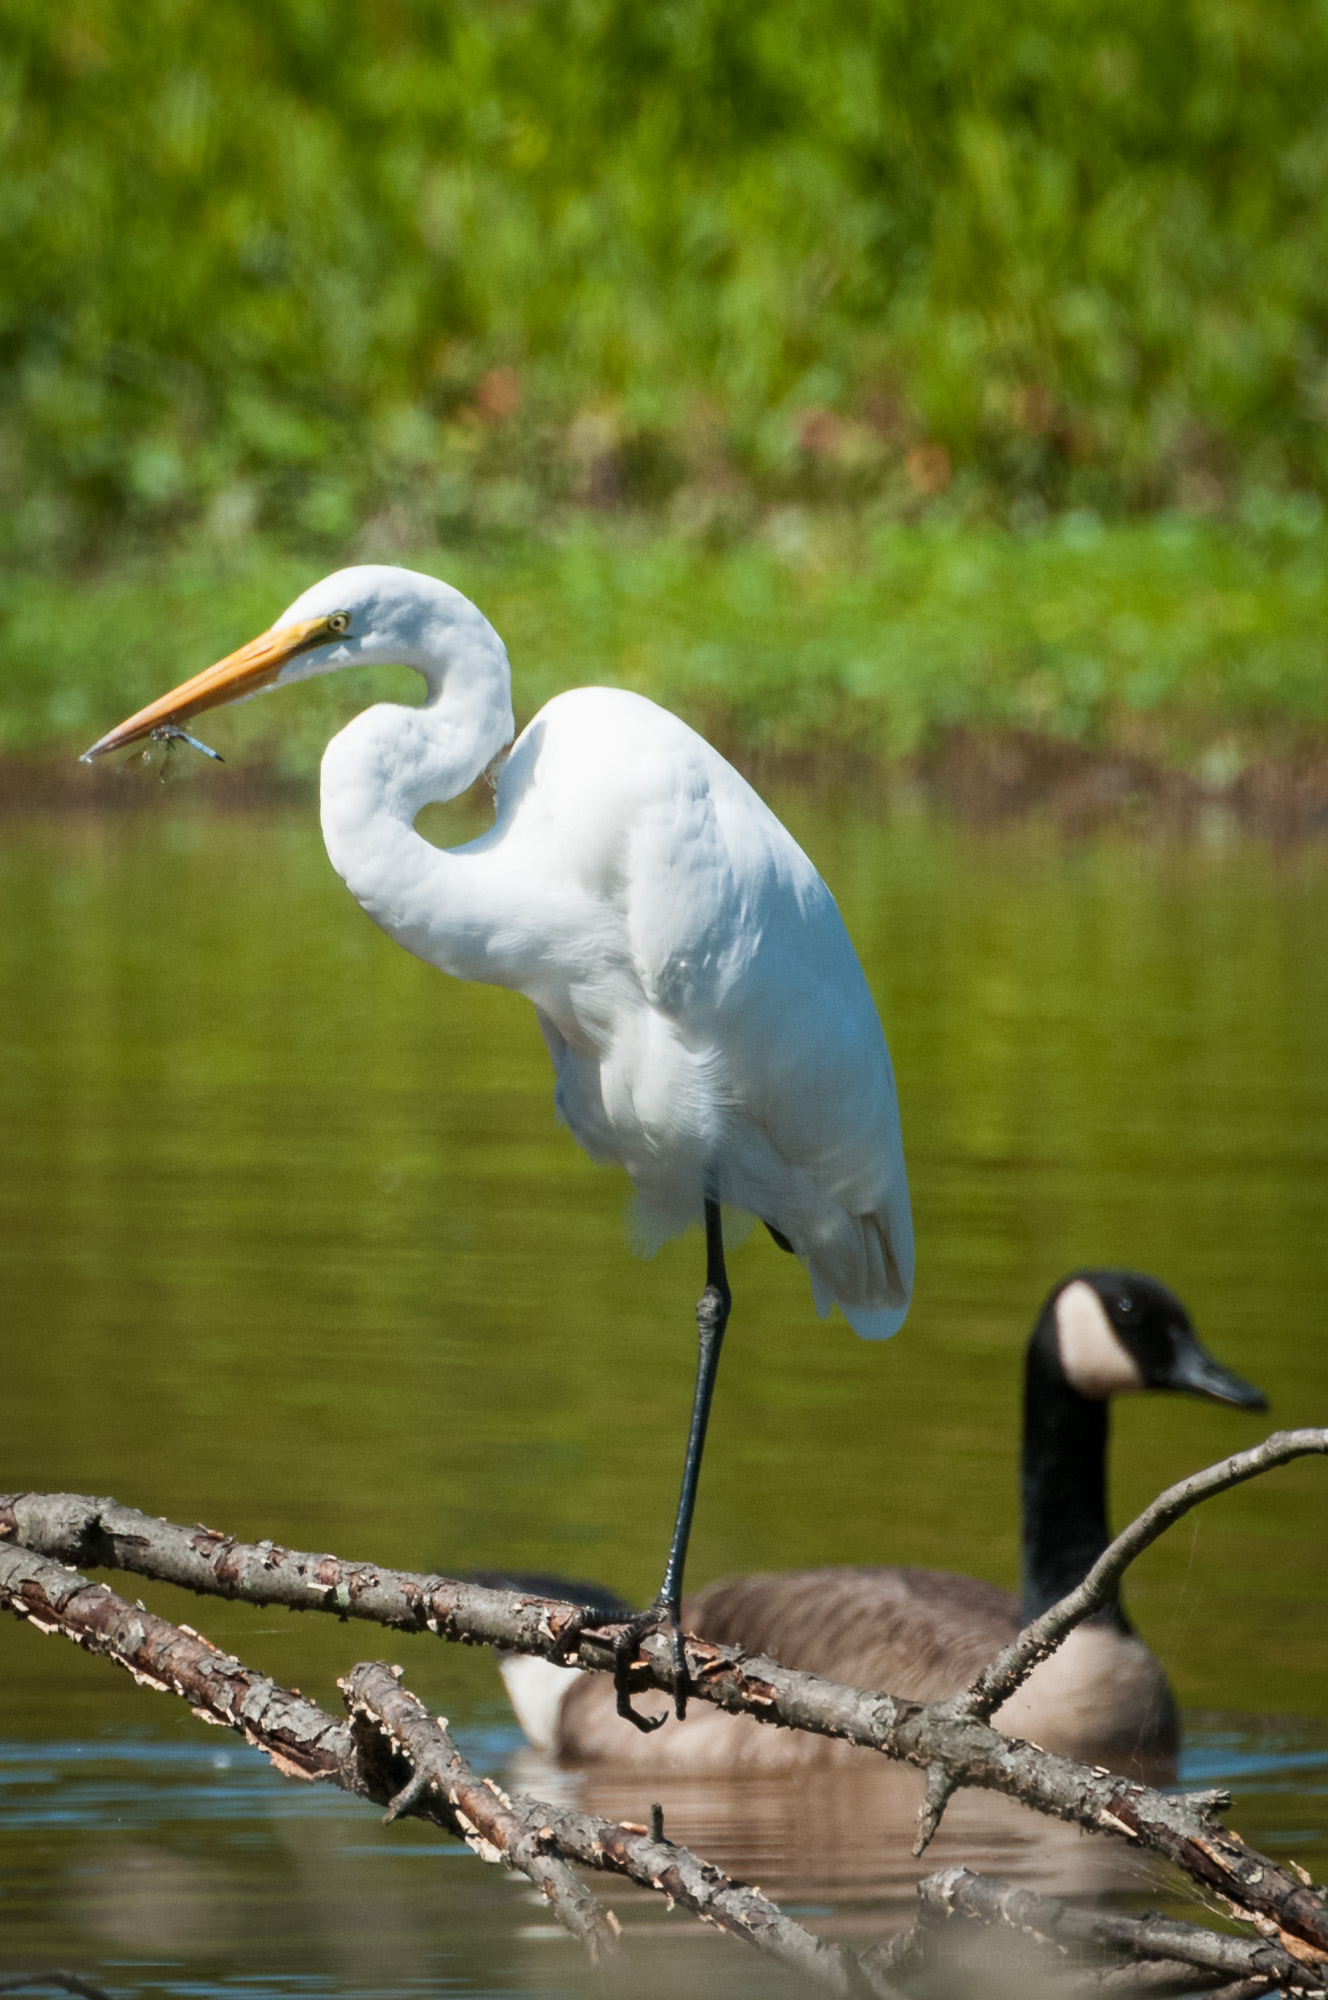 Great Egret eating a dragonfly